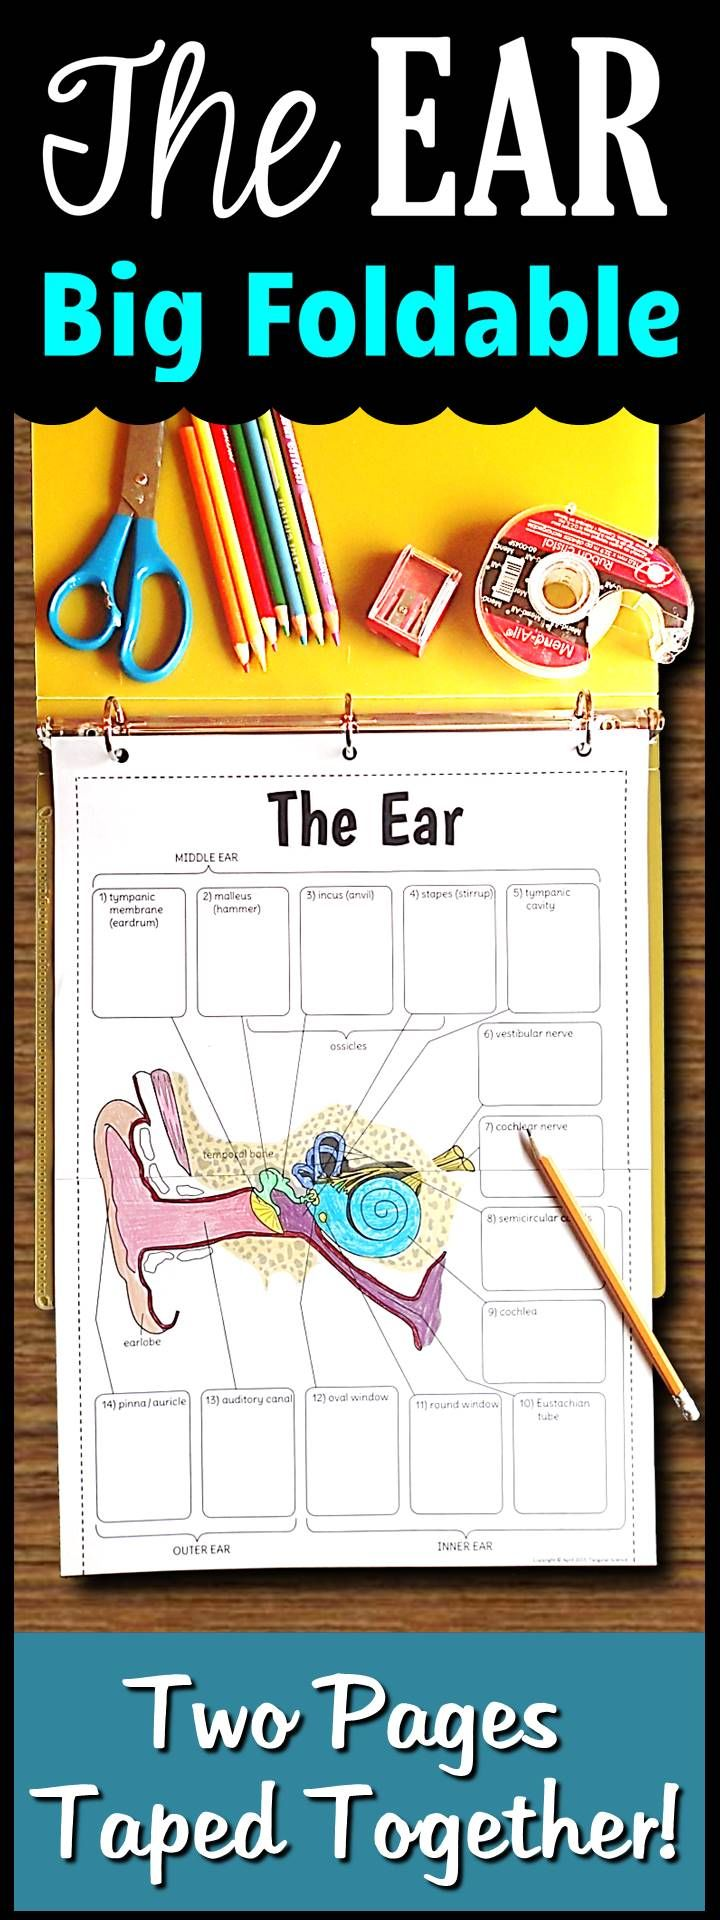 Ear foldable big foldable for interactive notebooks or binders the big ear foldable consists of two pages taped together there is minimal cutting involved to save you class time while providing an engaging foldable for ccuart Choice Image